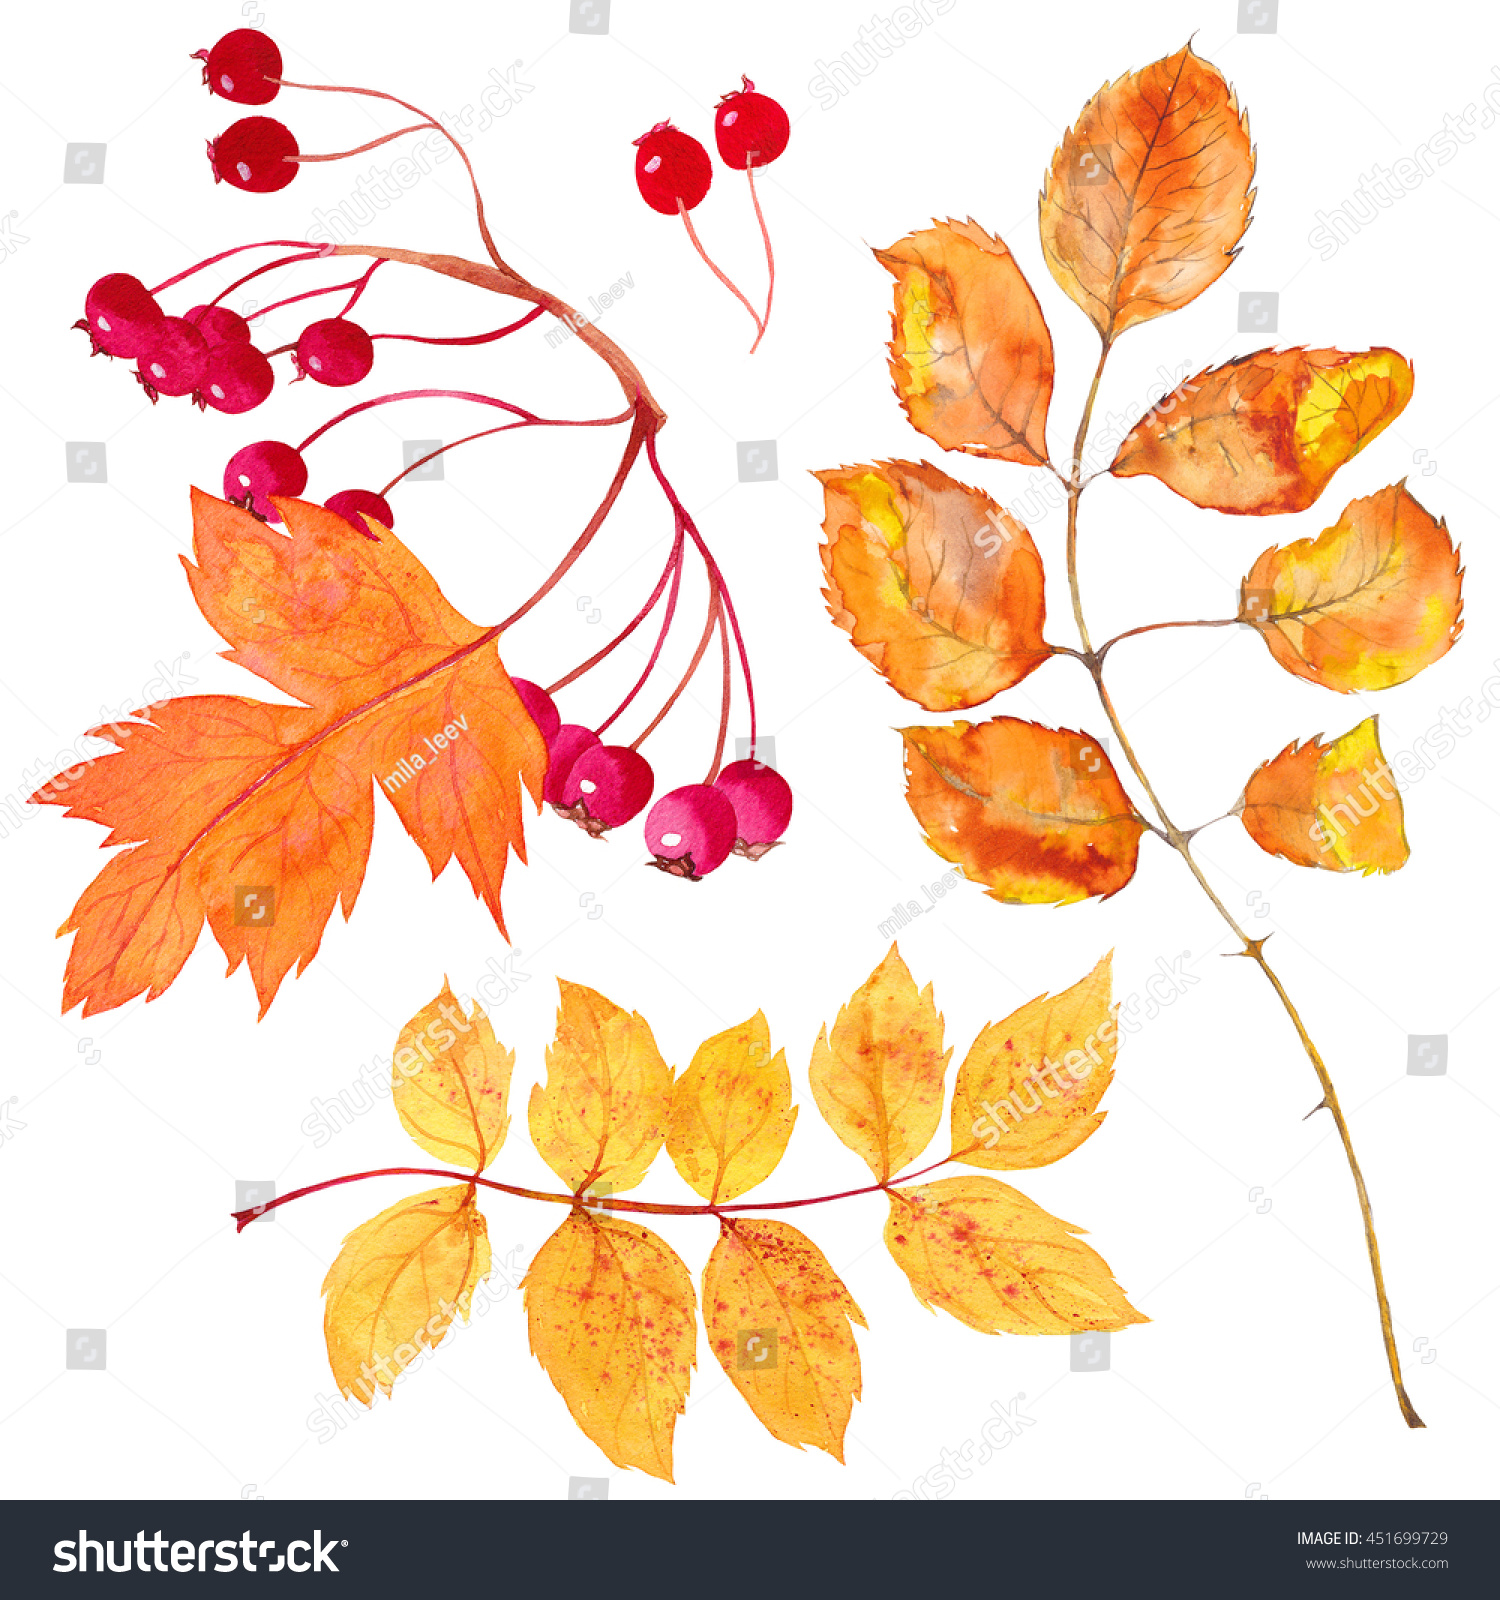 Watercolor Autumn Leaves Hawthorn Dead Branch Stock Illustration ...